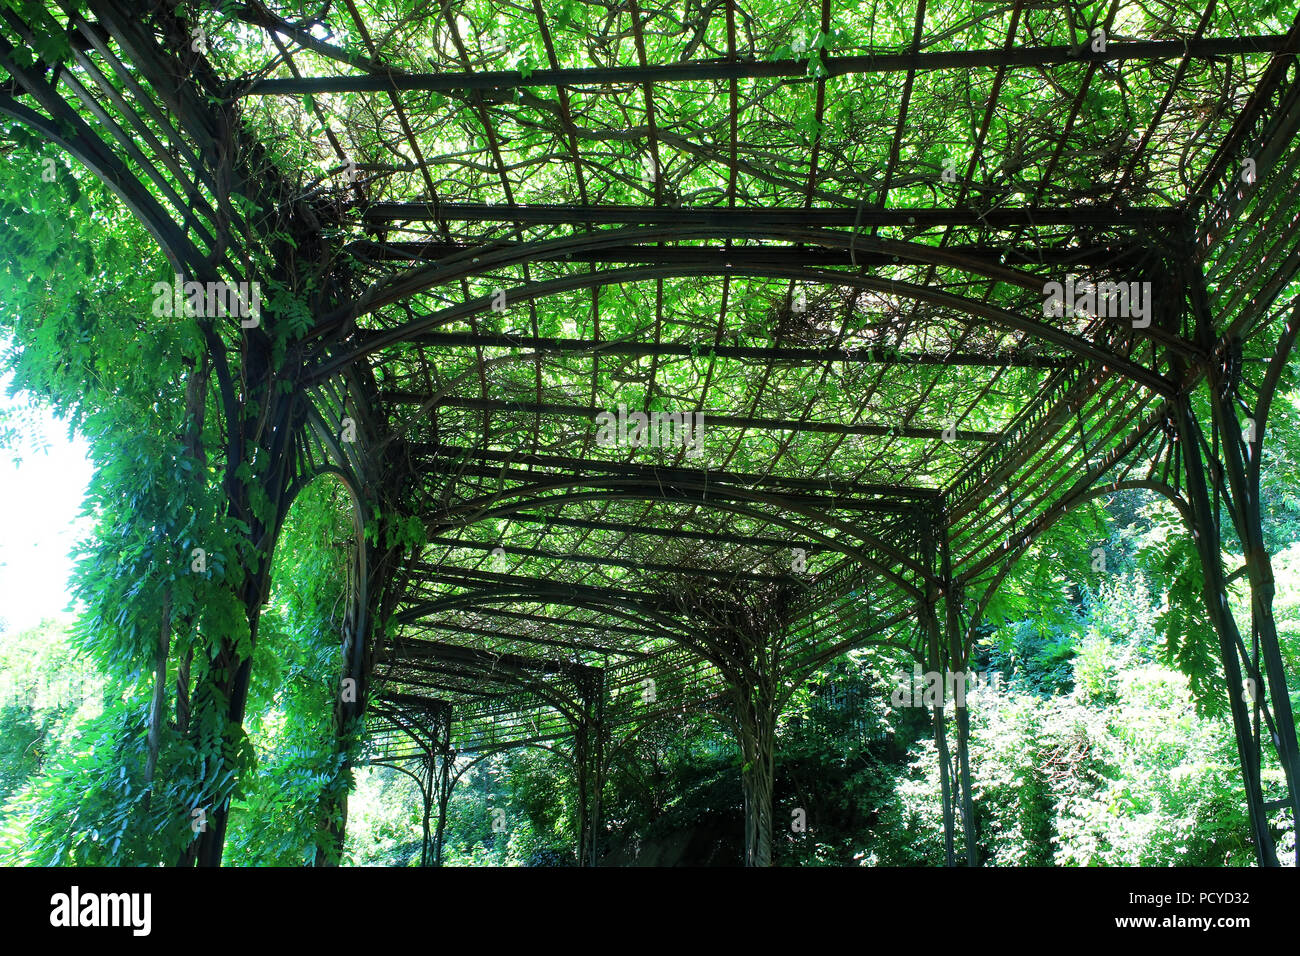 Wisteria pergola in the beautiful Conservatory Garden which is the only formal garden in Central Park, Manhattan on JULY 4th, 2017 in New York, USA. ( Stock Photo